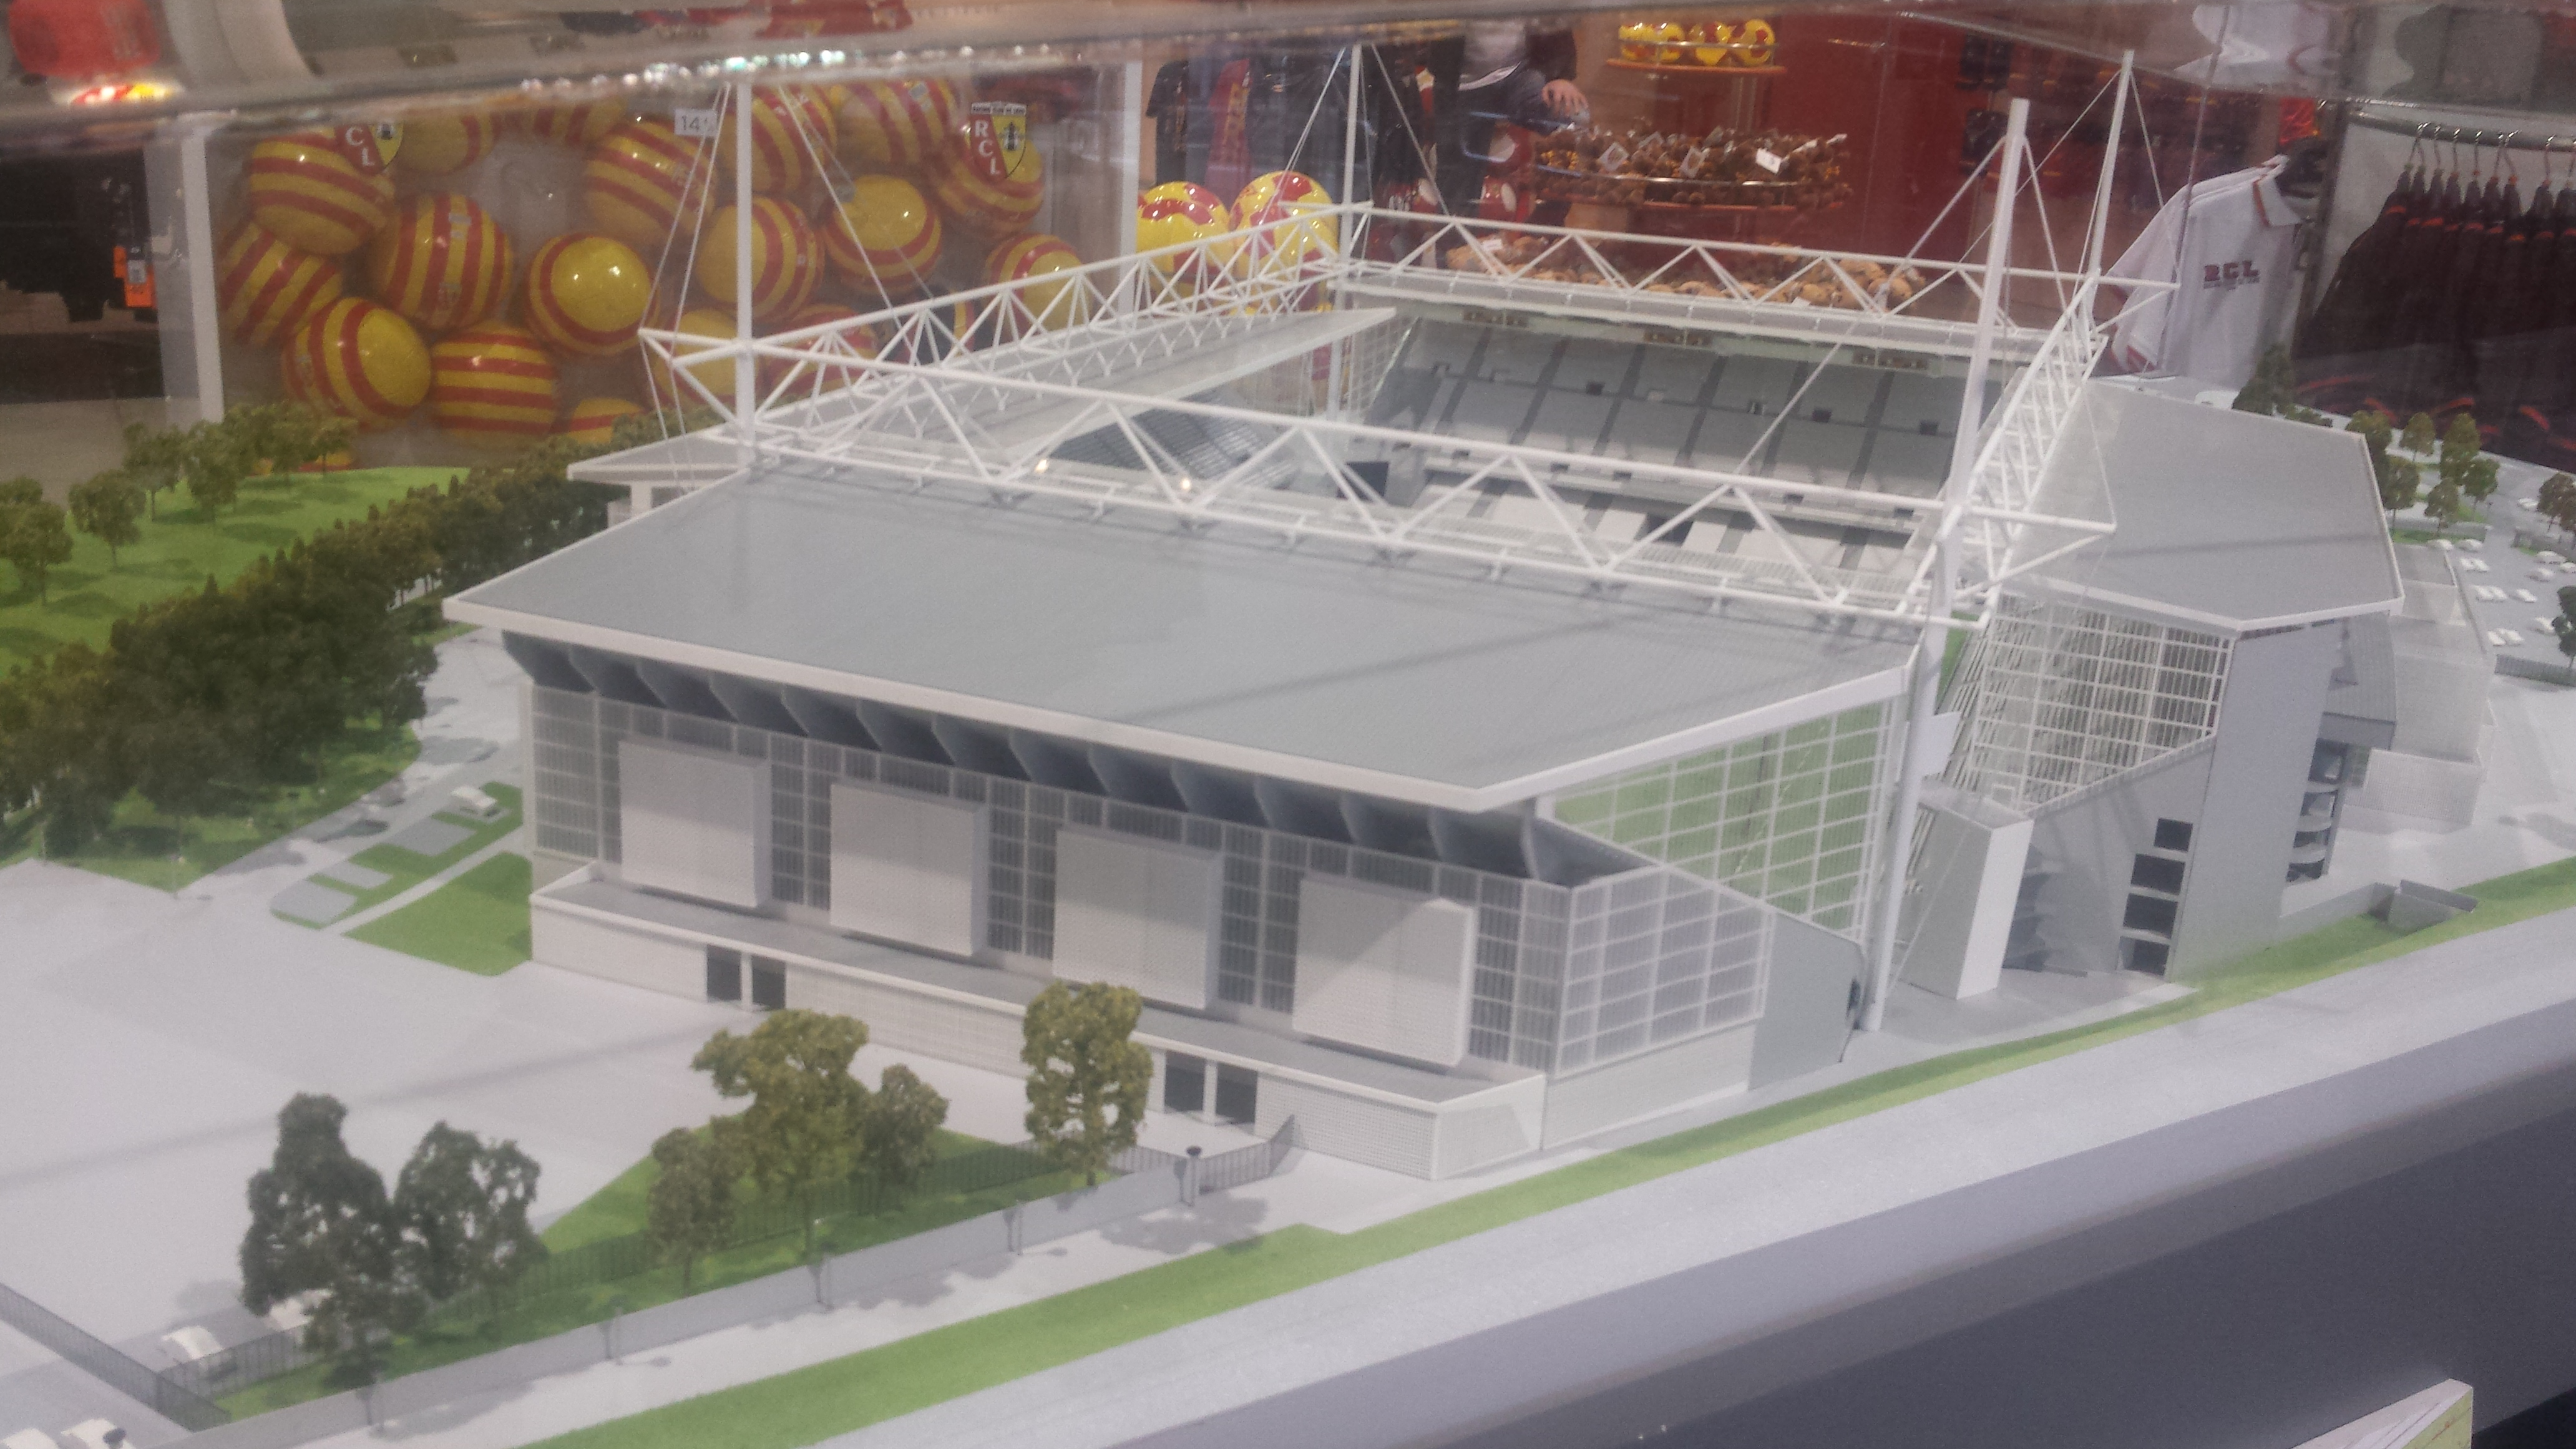 file maquette stade bollaert 2015 wikimedia commons